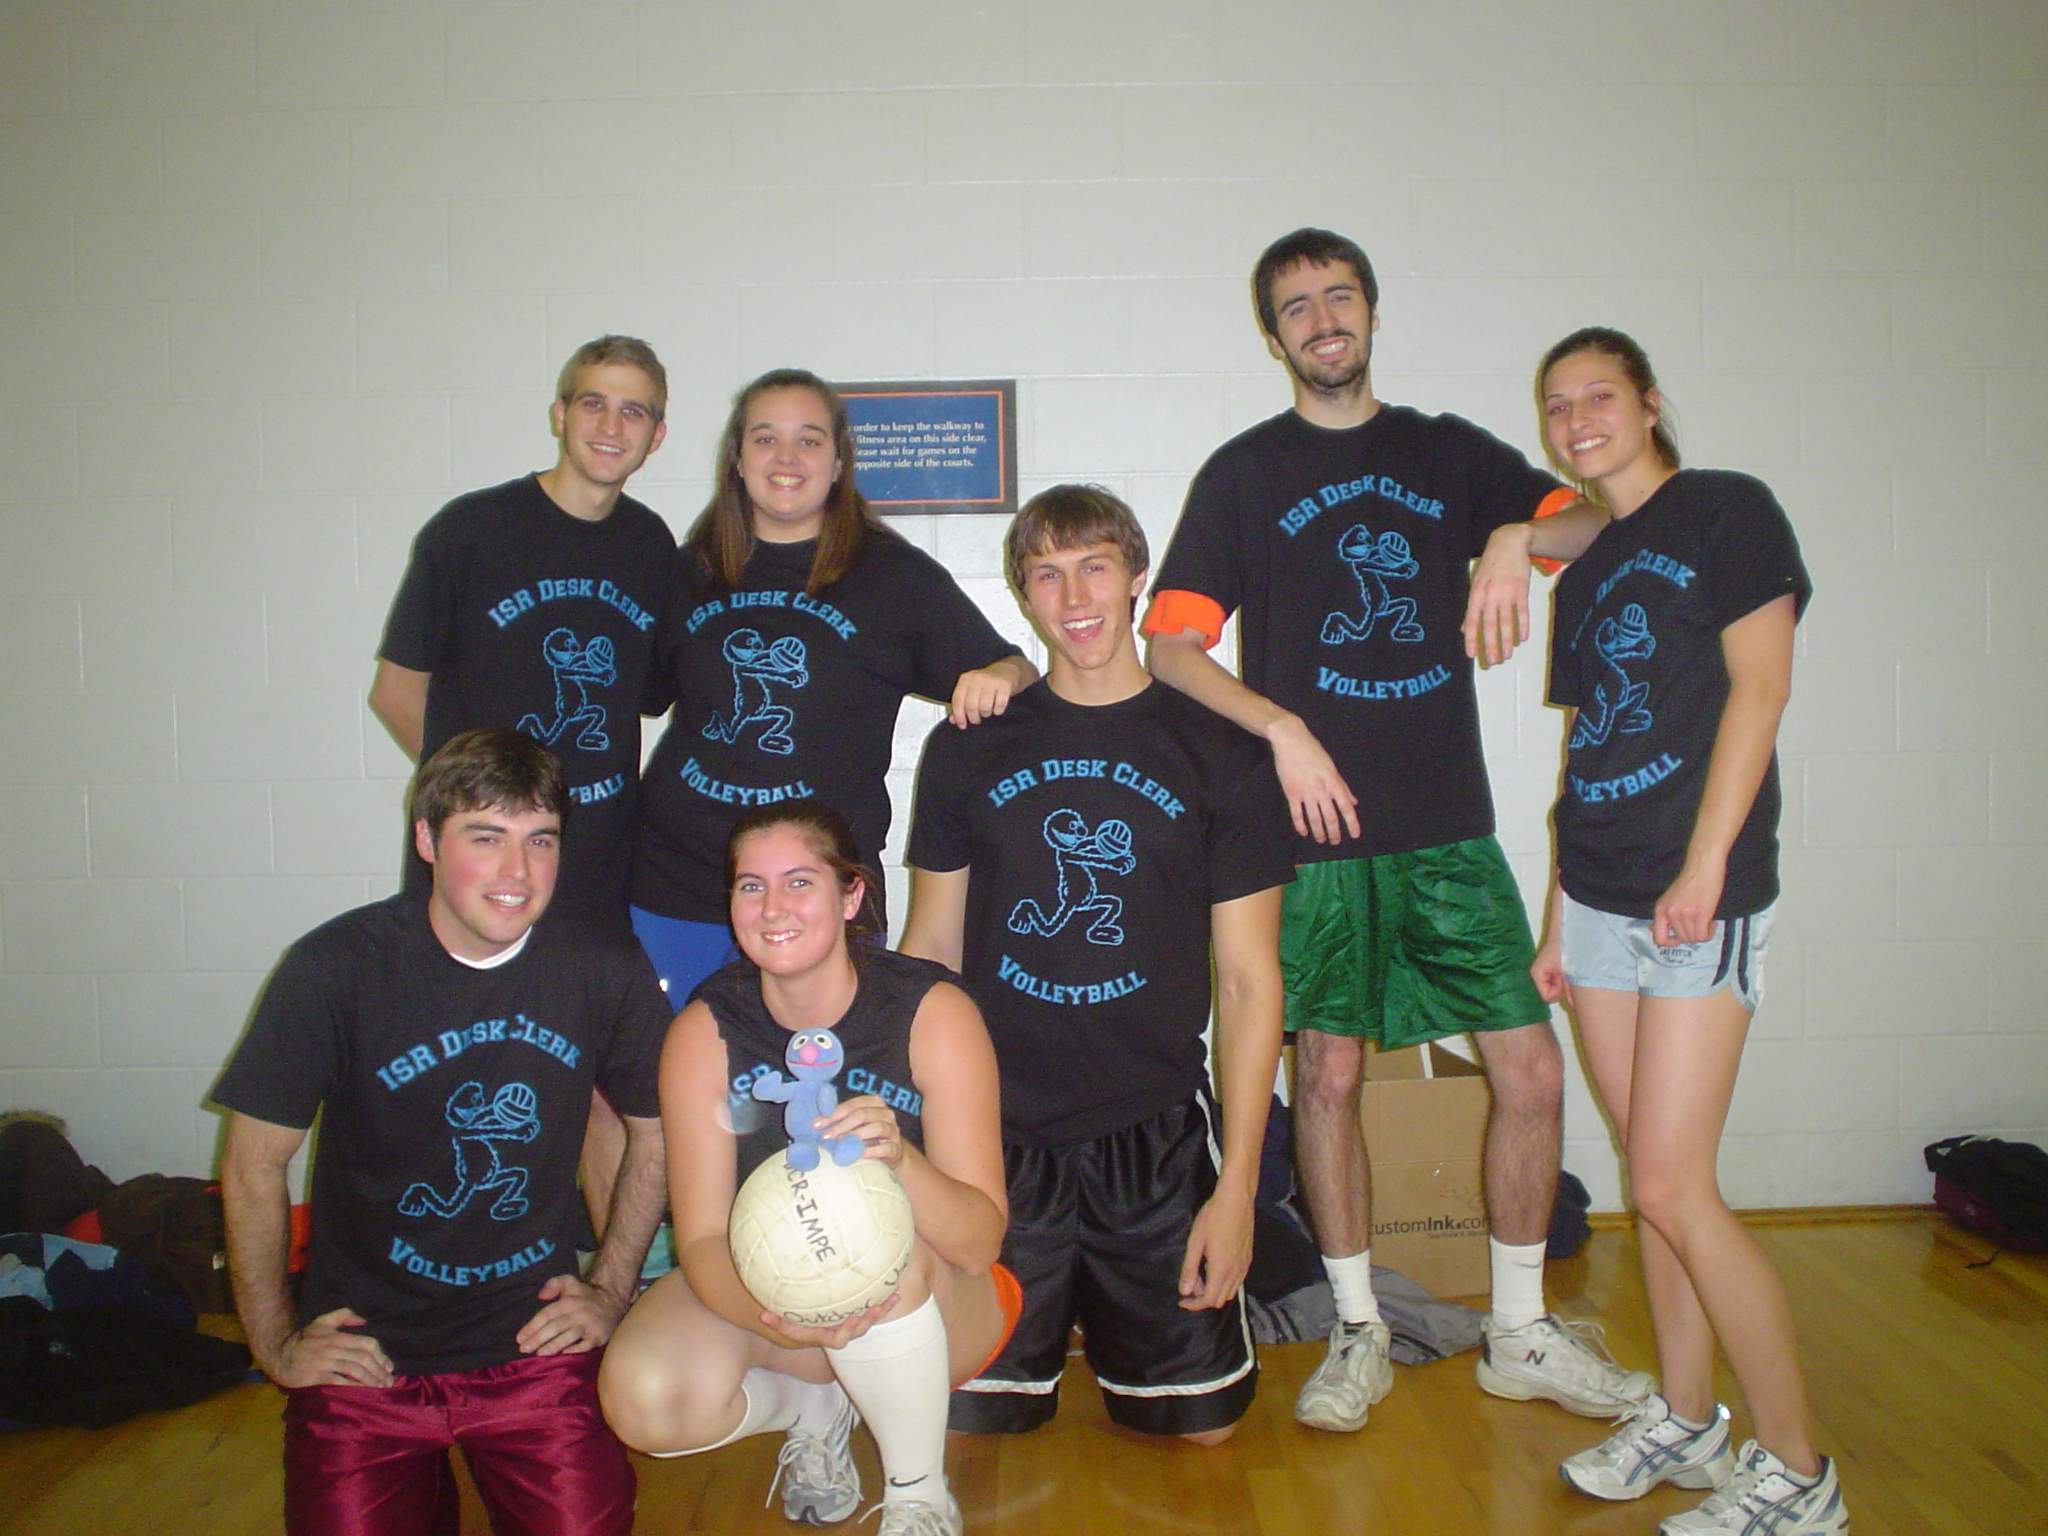 Shirt design course - Isr Intramural Volleyball Team Including Grover Of Course T Shirt Photo